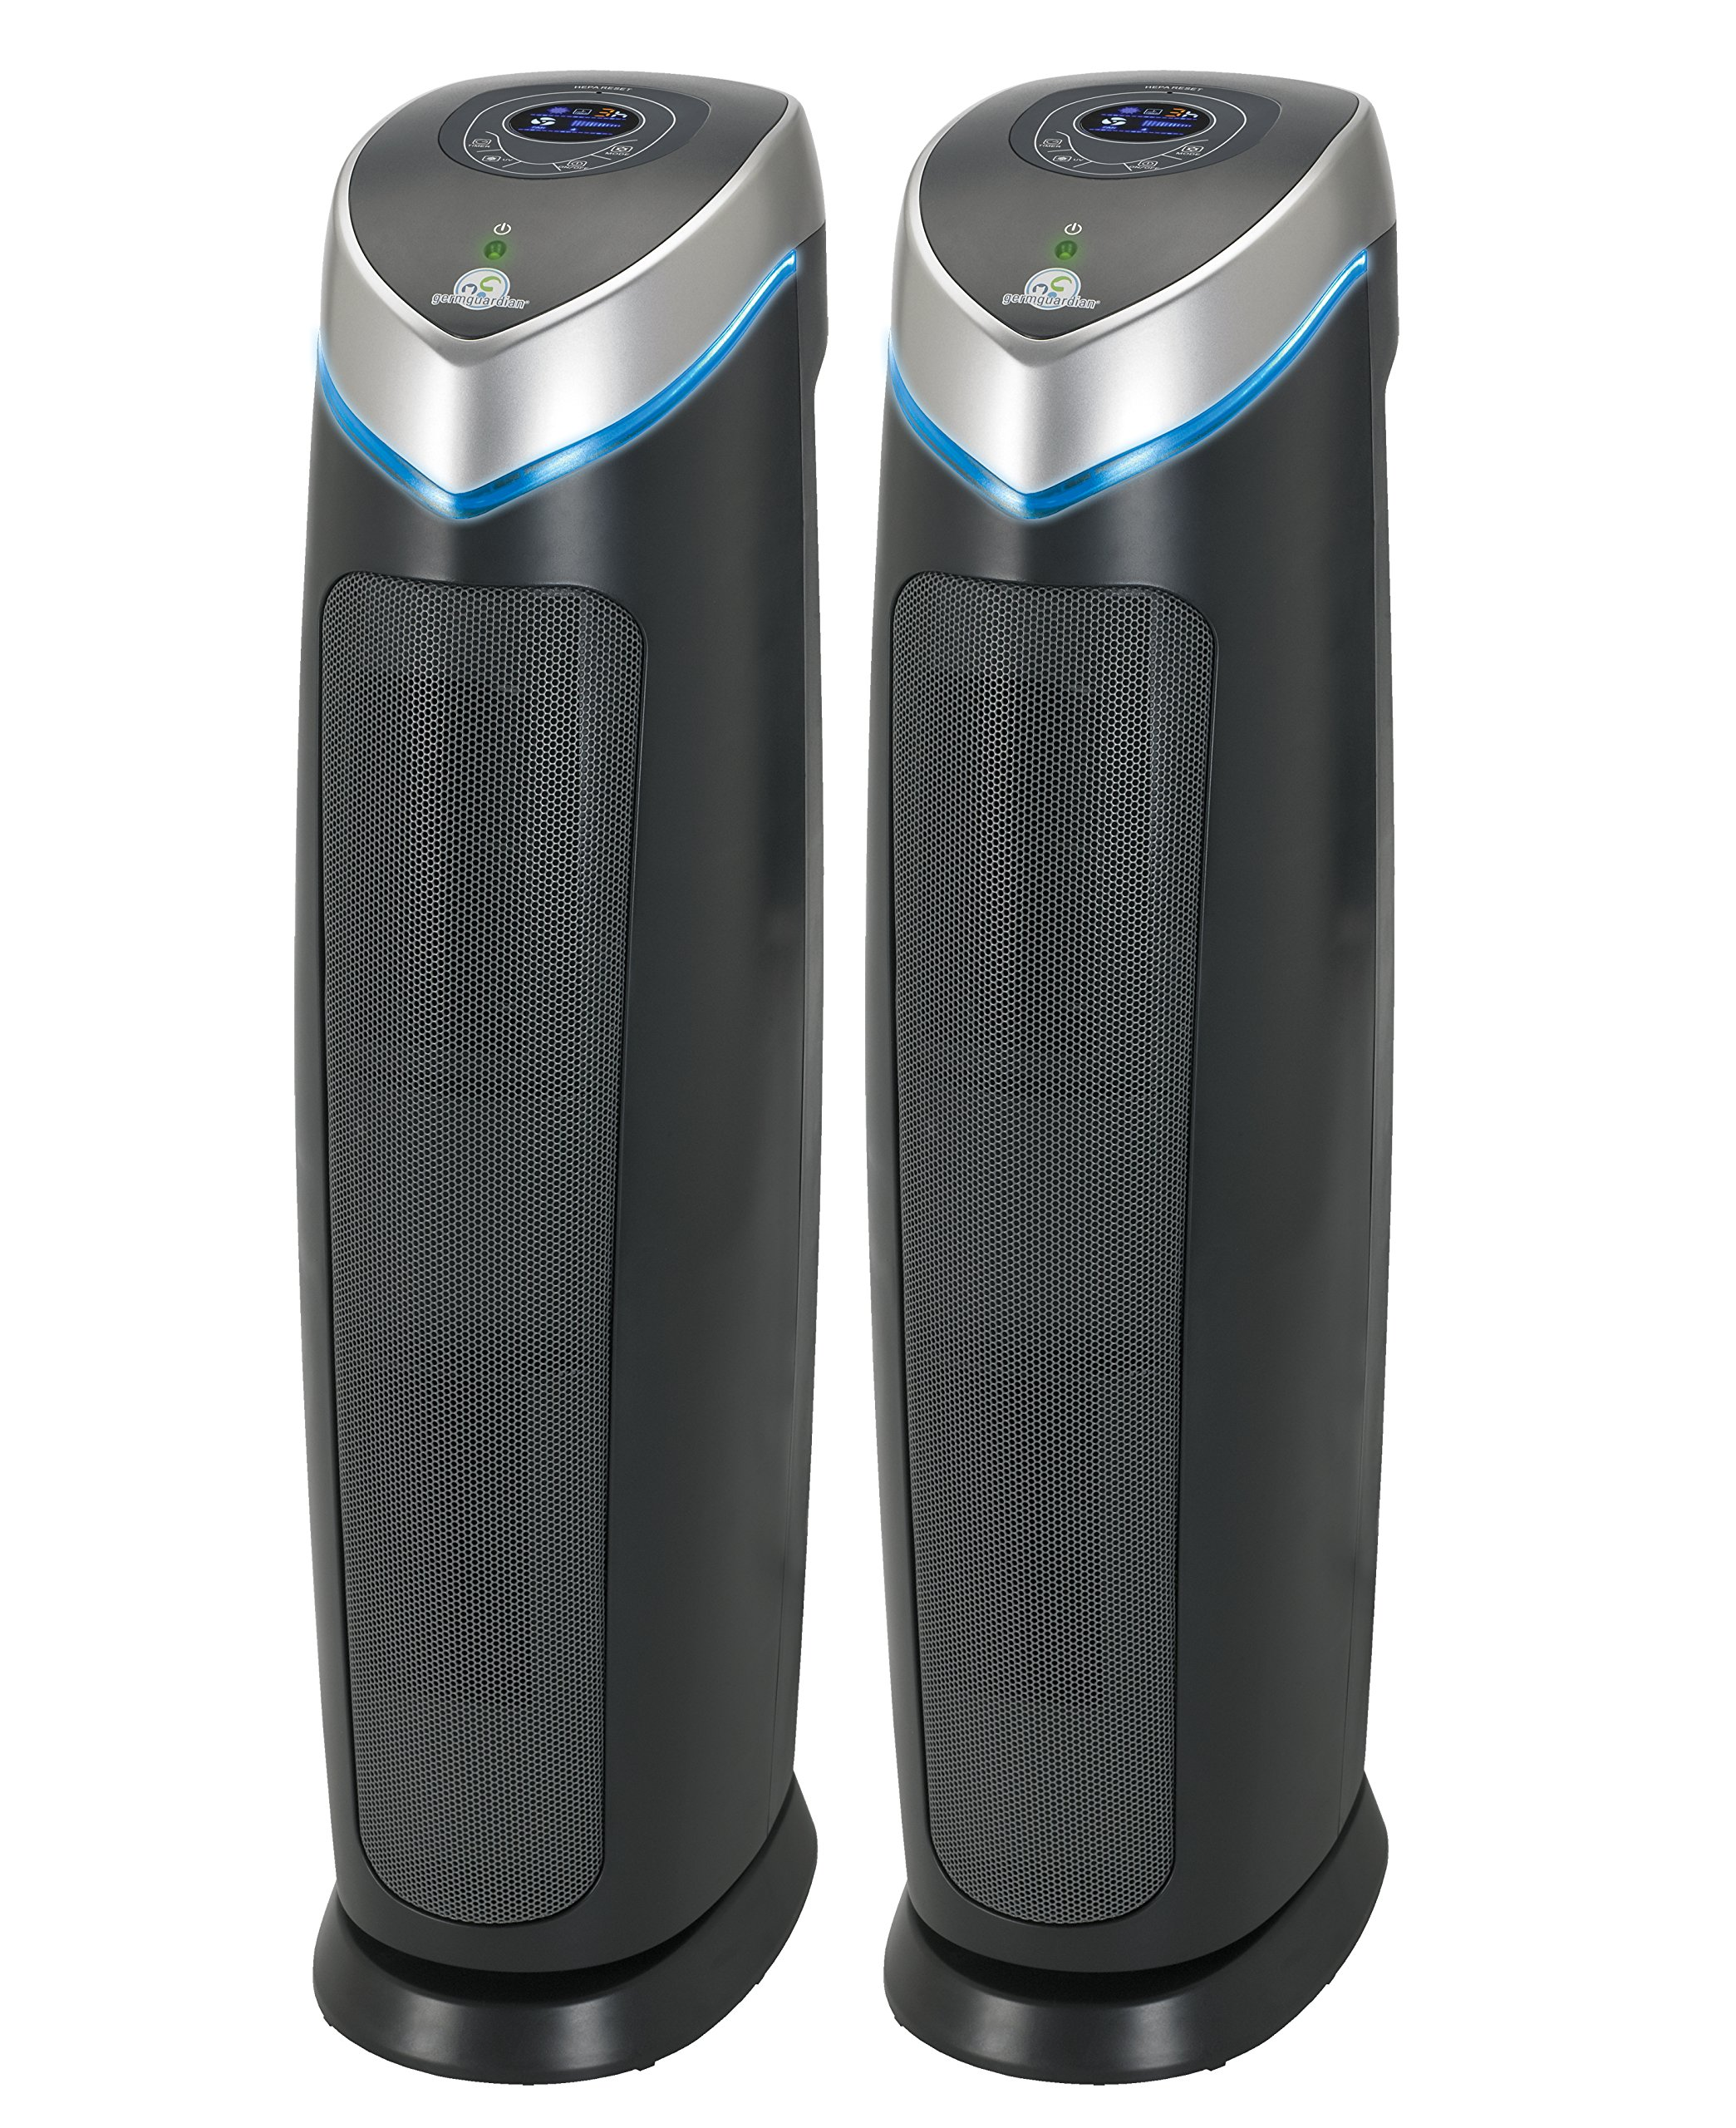 GermGuardian AC5250PT 3-in-1 Air Purifier (2 Pack)